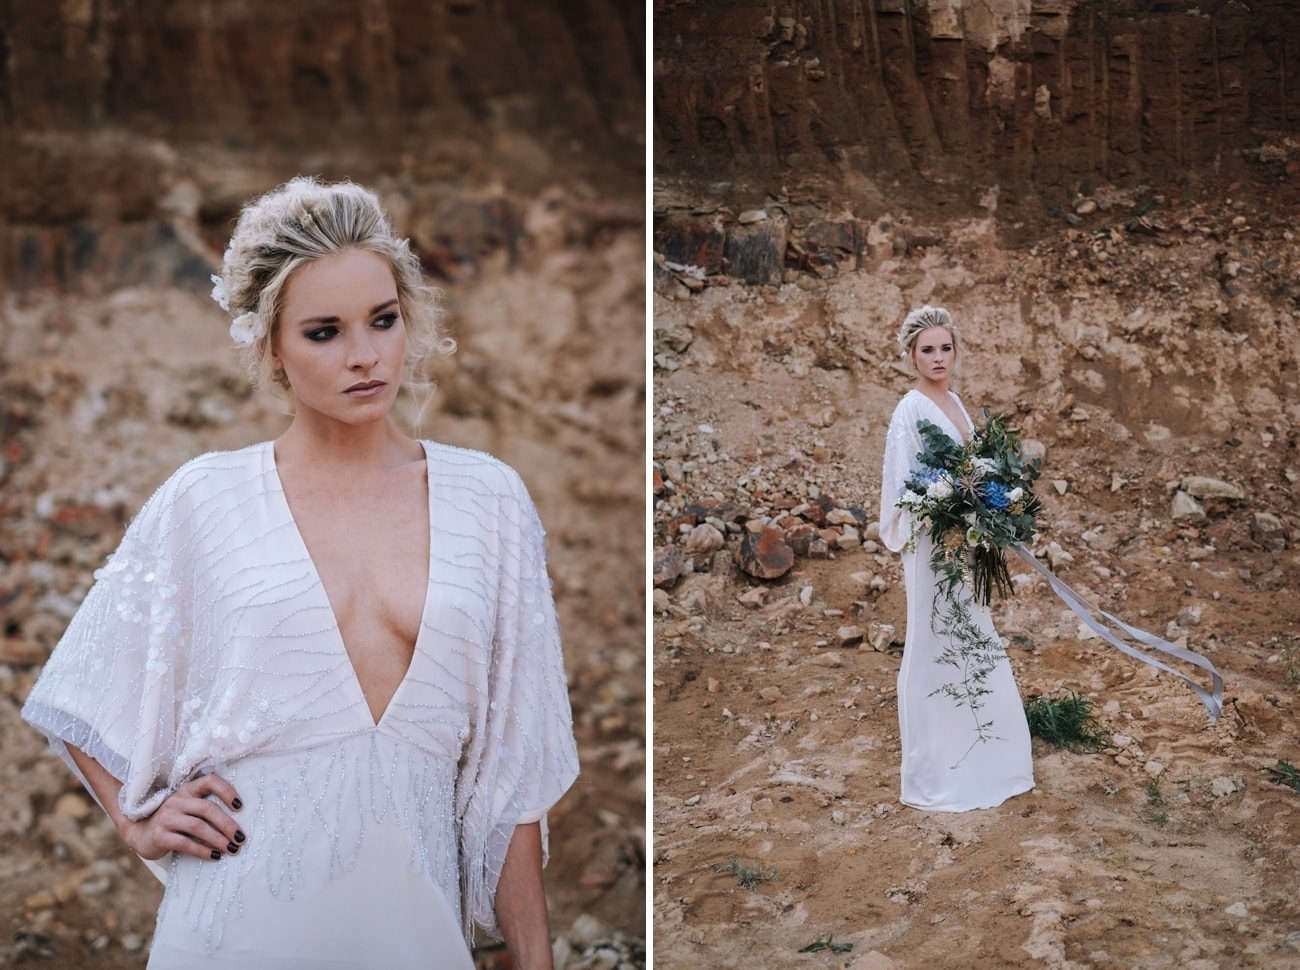 Atmospheric Wedding Inspiration | Credit: The Shank Tank